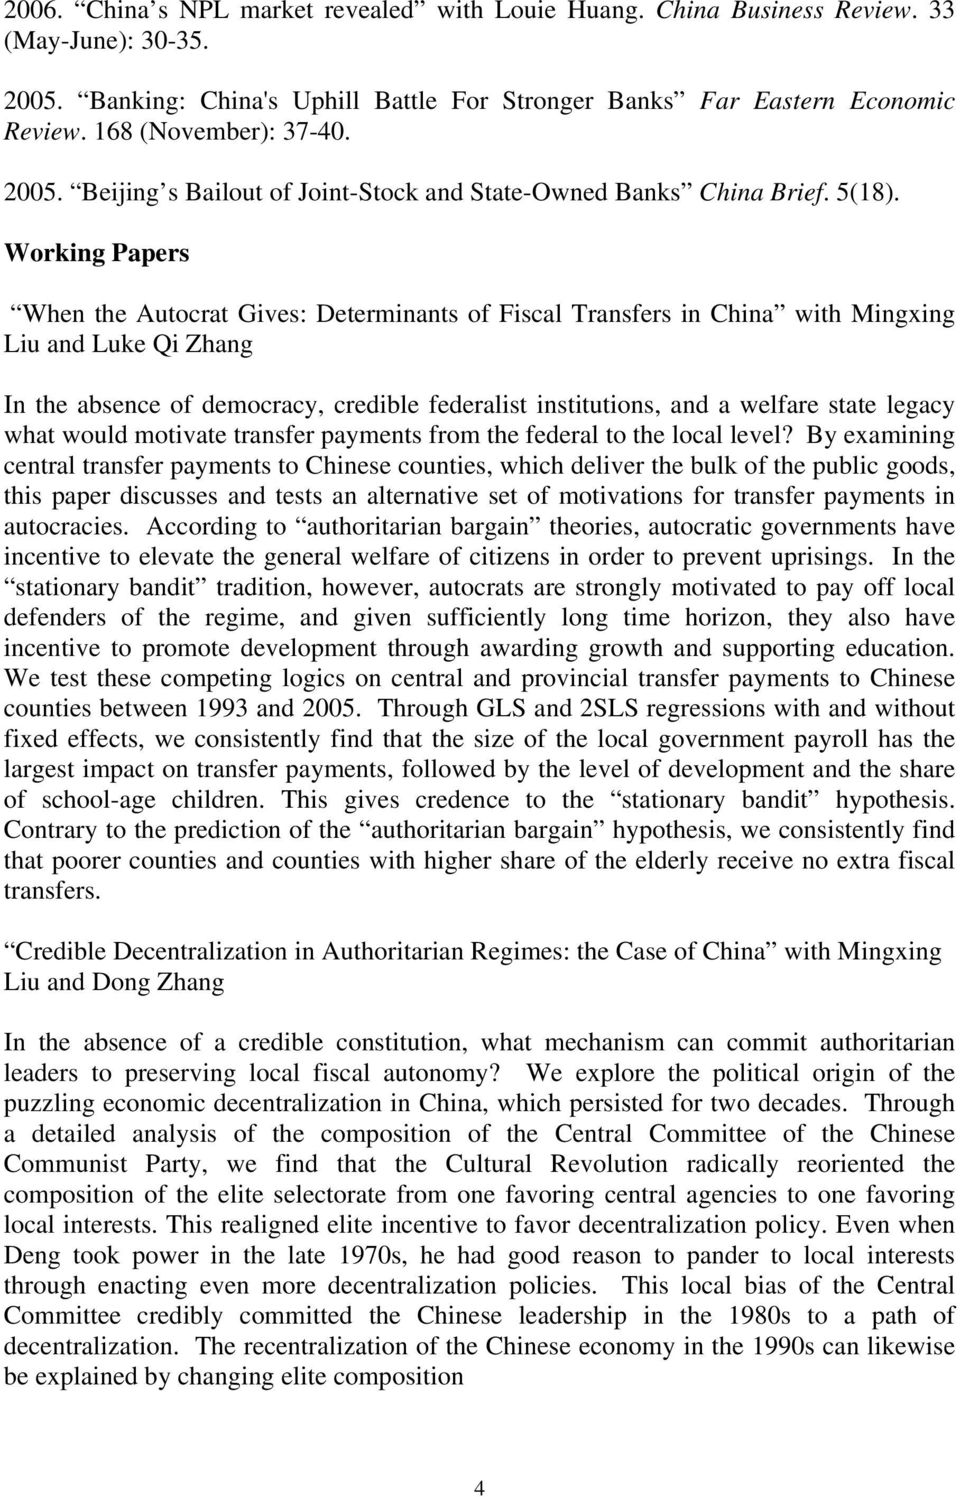 Working Papers When the Autocrat Gives: Determinants of Fiscal Transfers in China with Mingxing Liu and Luke Qi Zhang In the absence of democracy, credible federalist institutions, and a welfare